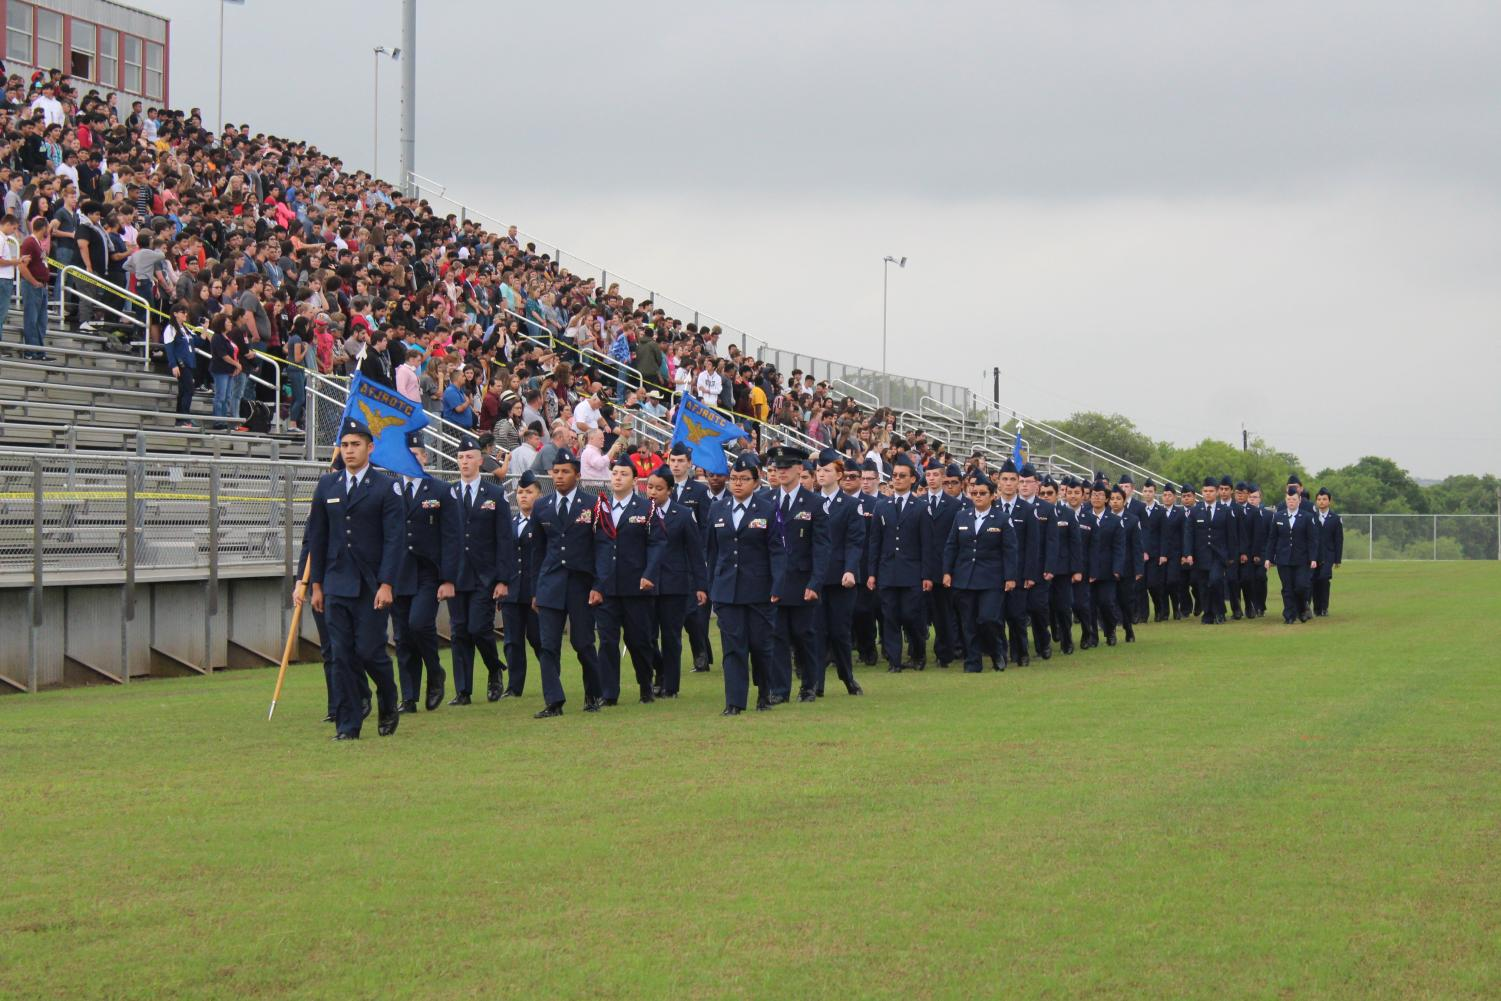 JROTC marching in step of one another during their 2019 Pass in Review